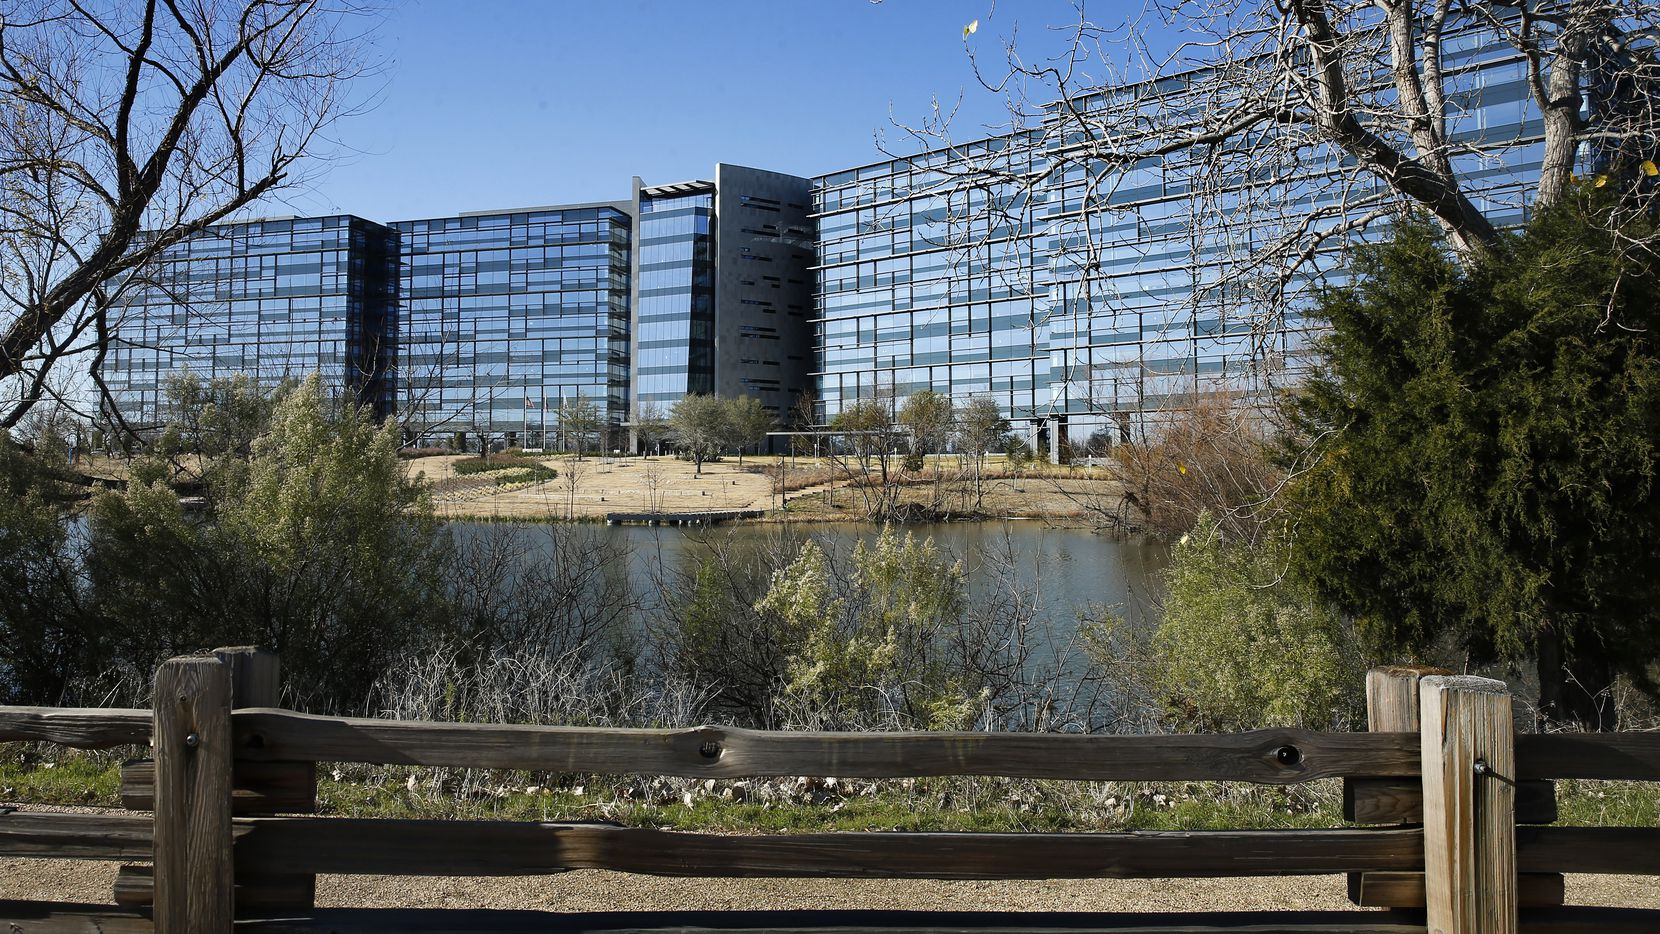 Pioneer Natural Resources, which moved into a new Las Colinas headquarters in late 2019, has been steadily reducing its workforce, both in the field and corporate offices. According to its public filings, Pioneer ended 2020 with 1,853 employees, fewer than half the number it had three years earlier.